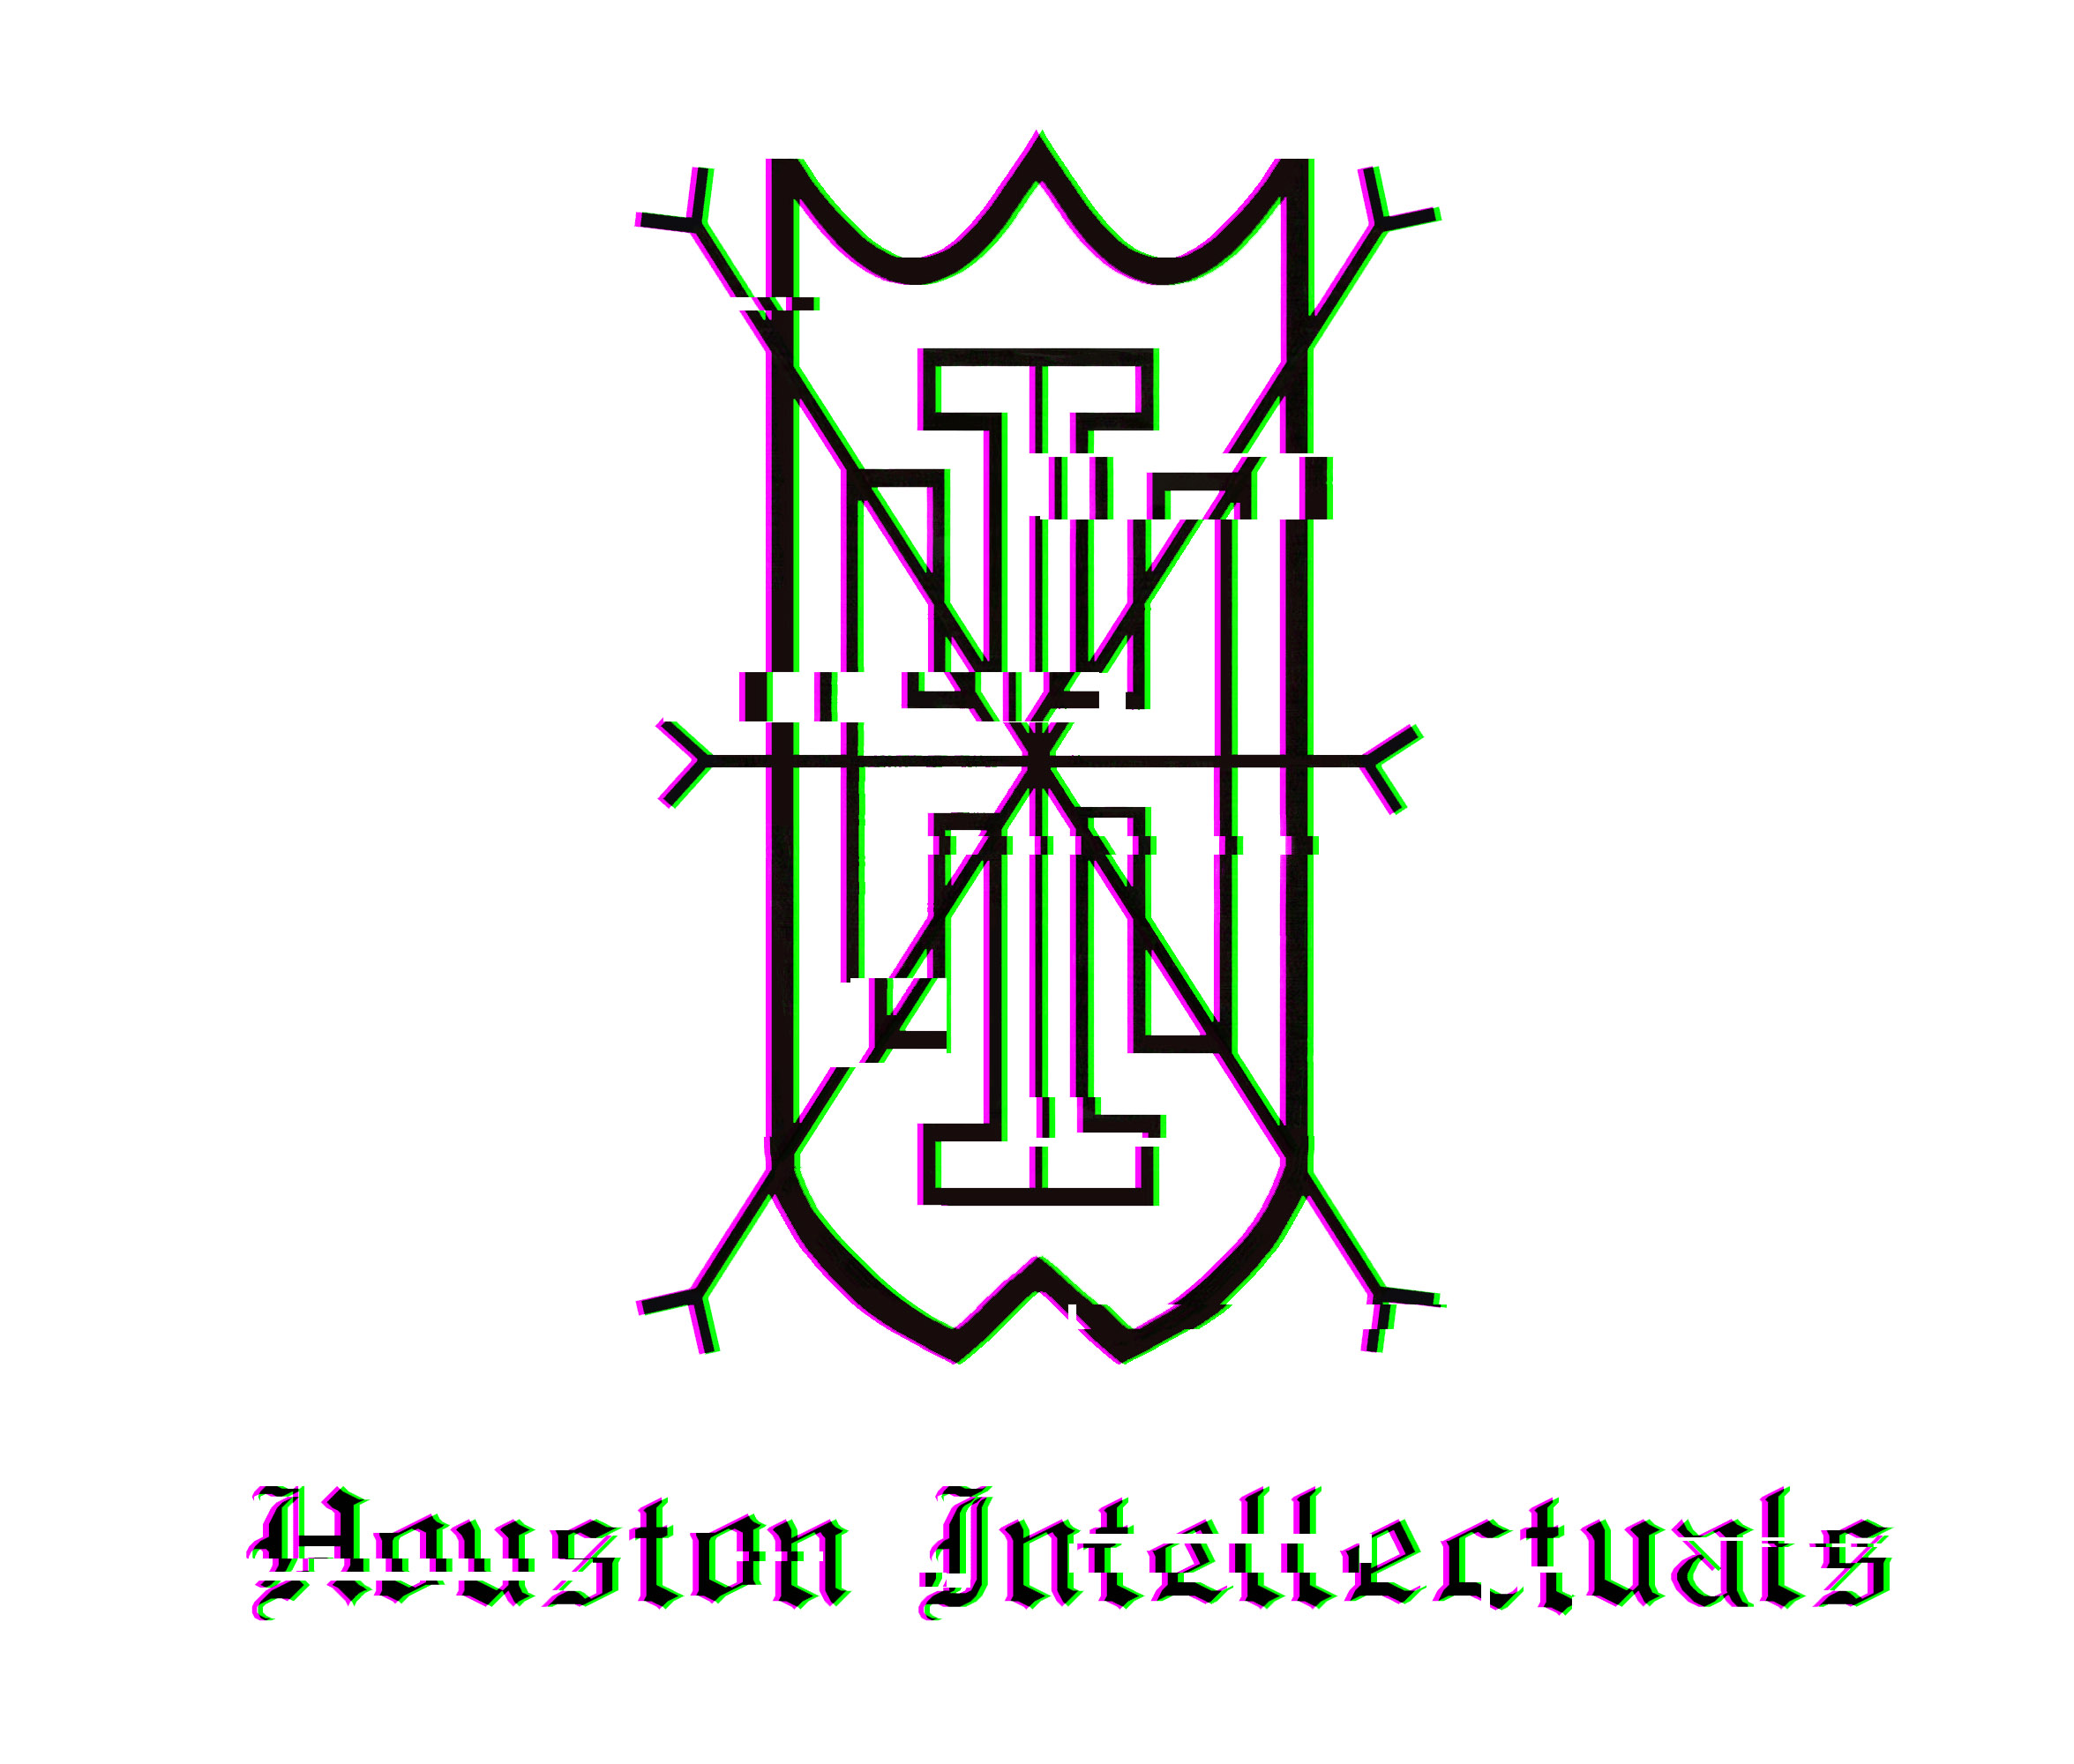 Who are the Houston Intellectuals?